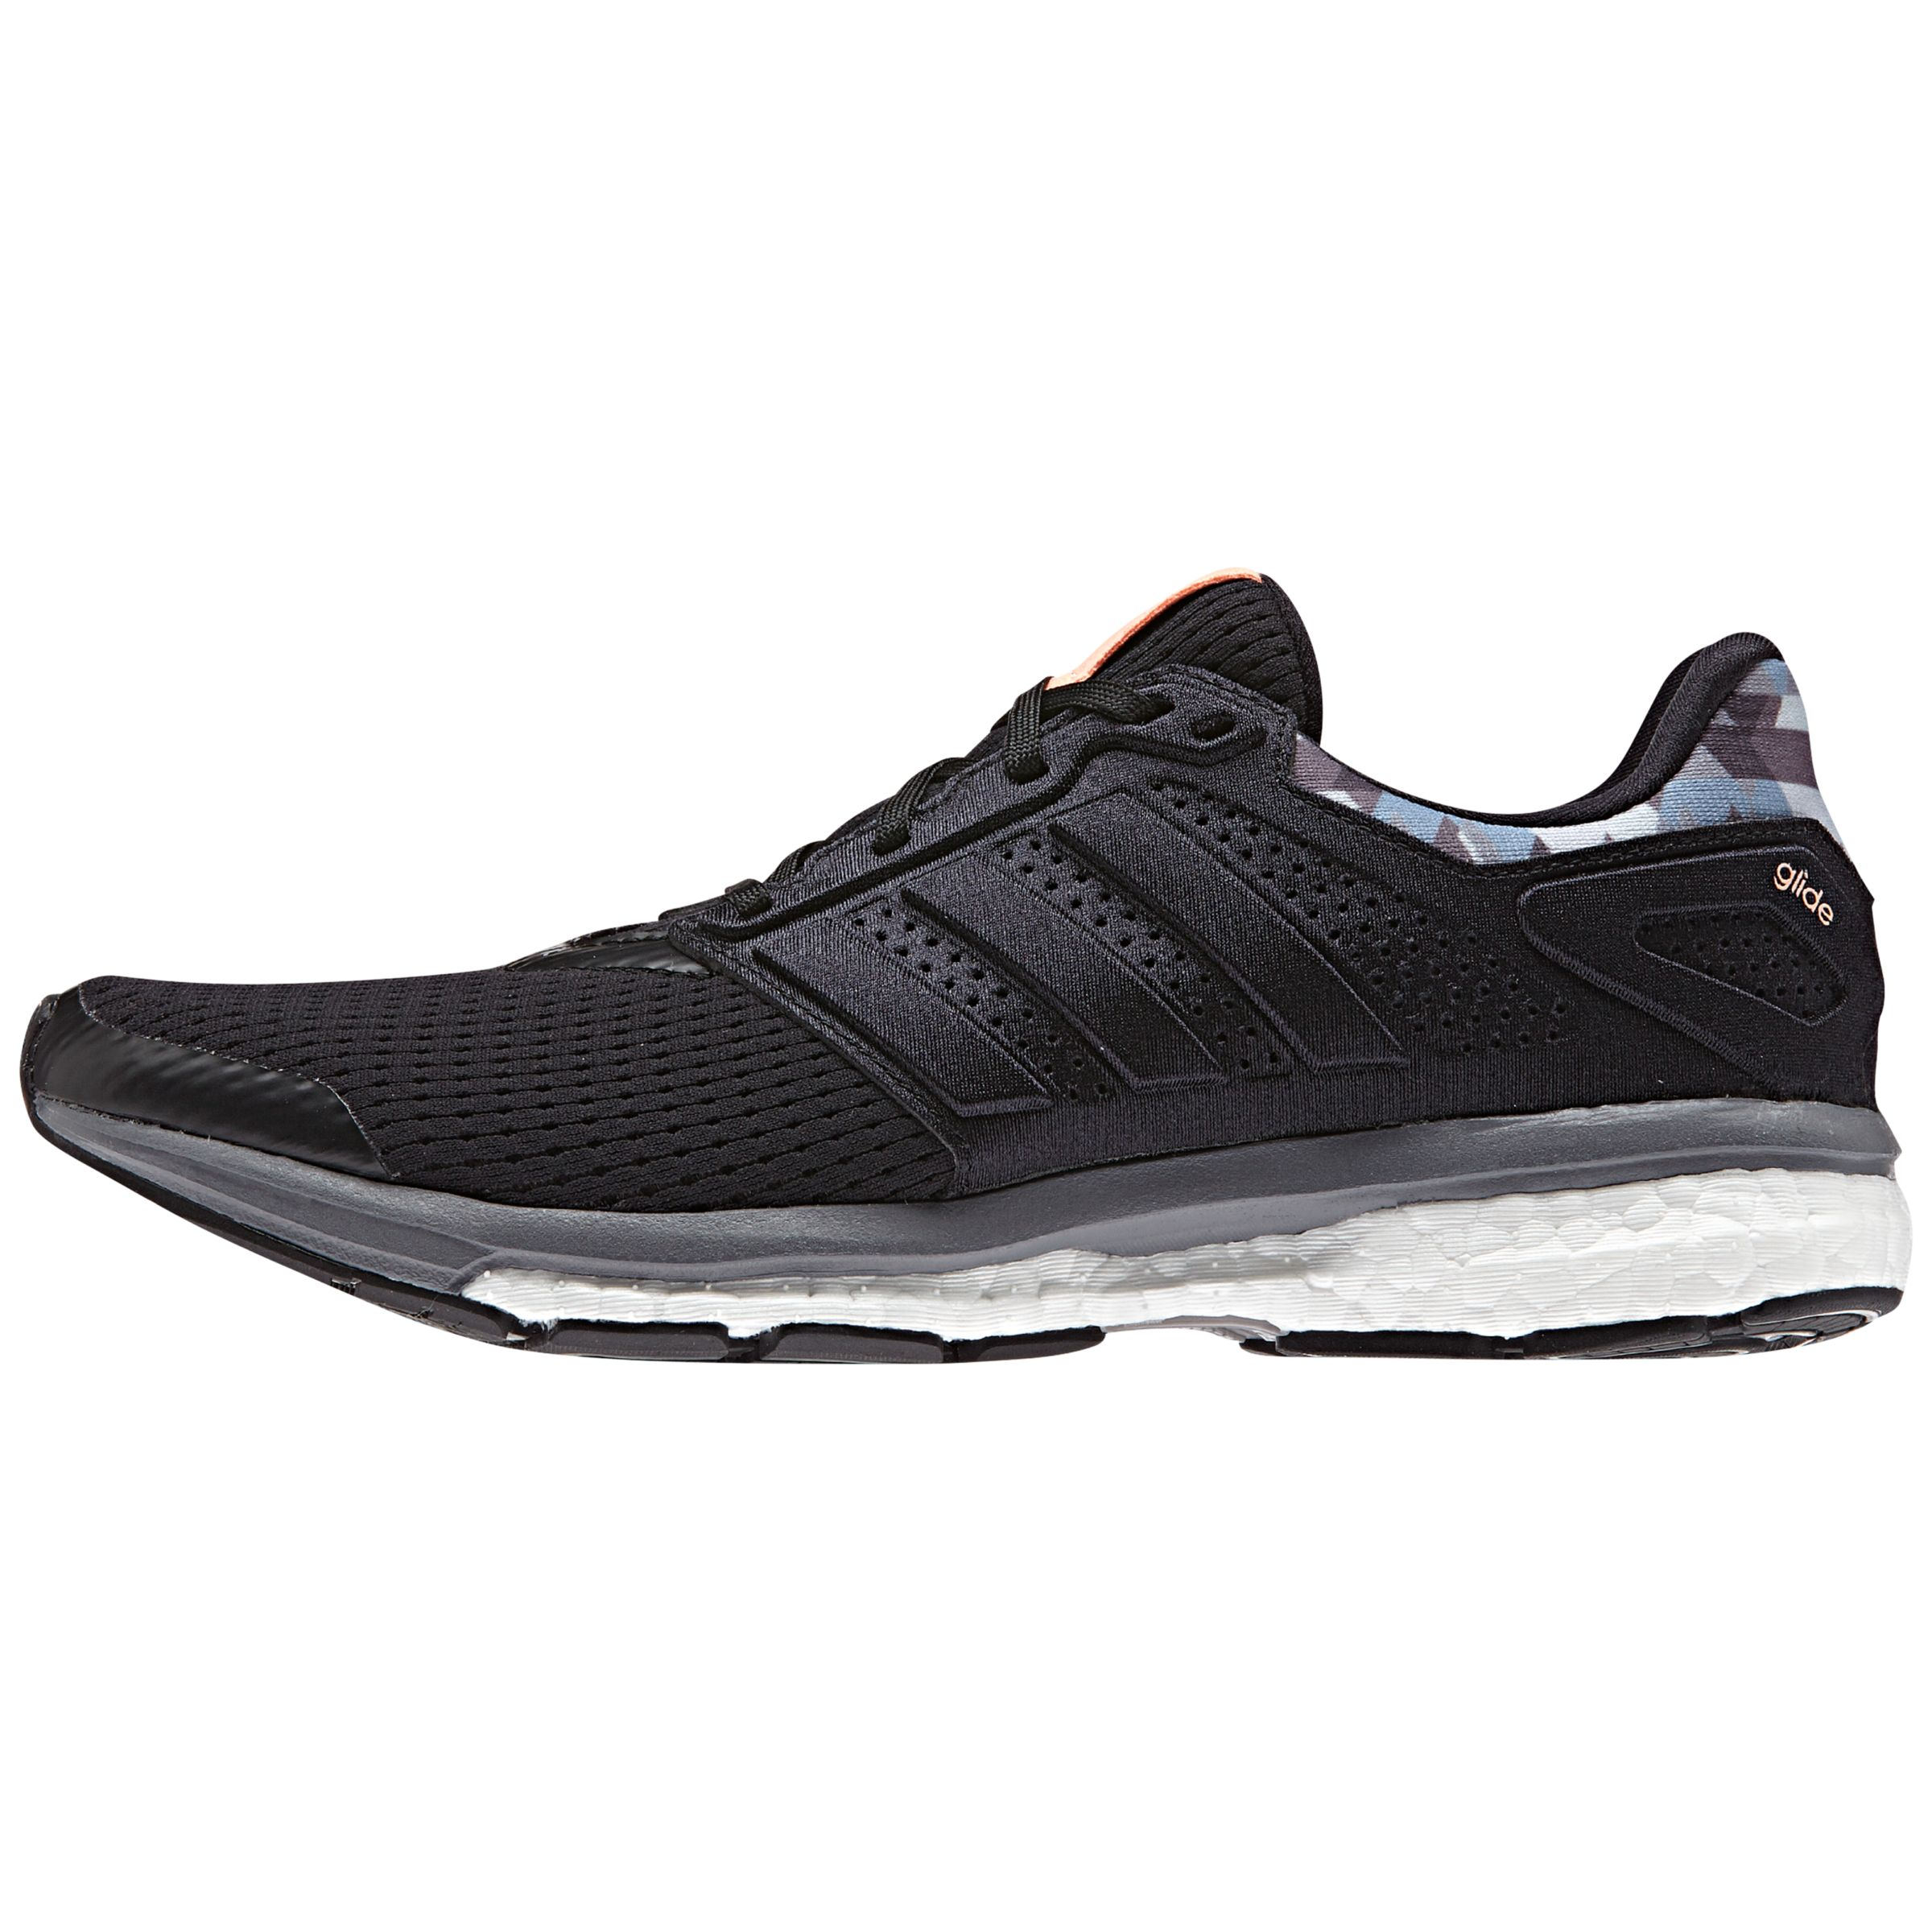 bcaa0b422 Adidas Supernova Glide 8 Women s Running Shoes at John Lewis   Partners